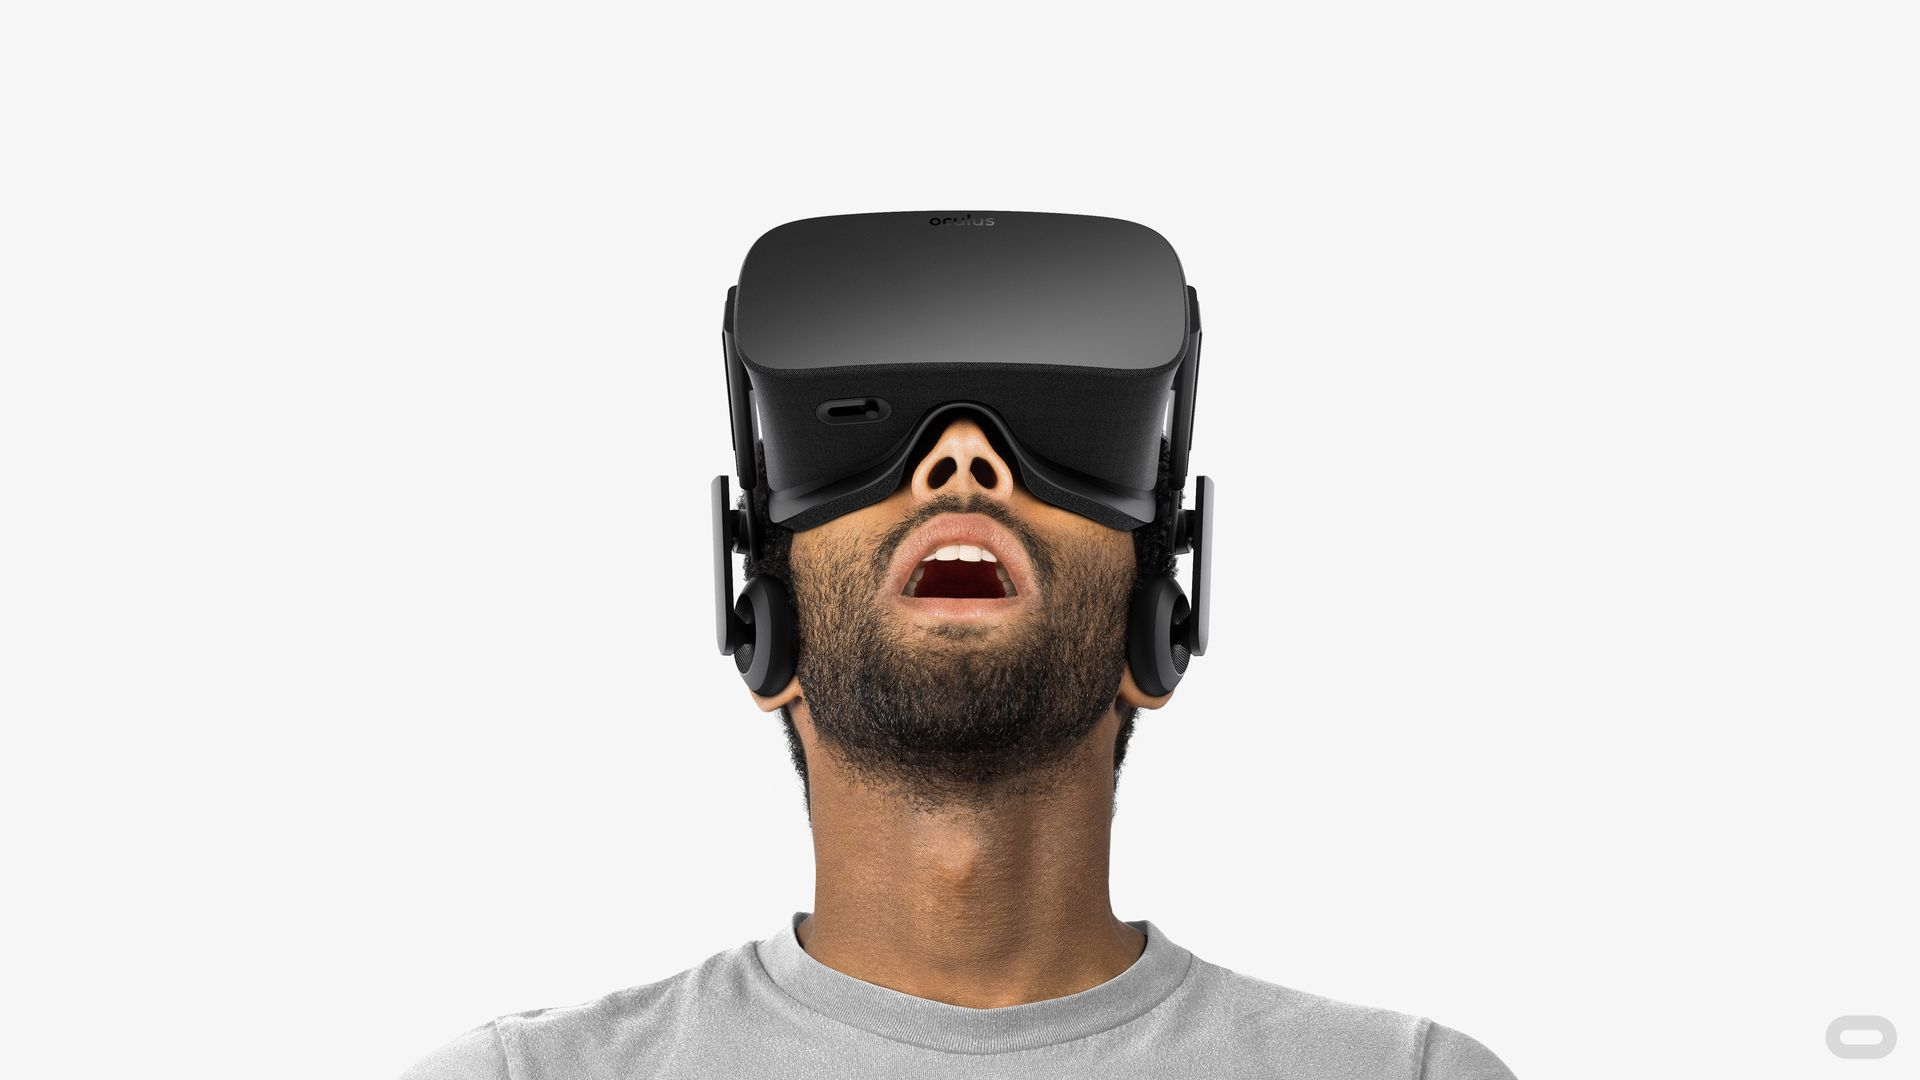 Man wearing an Oculus Rift headset